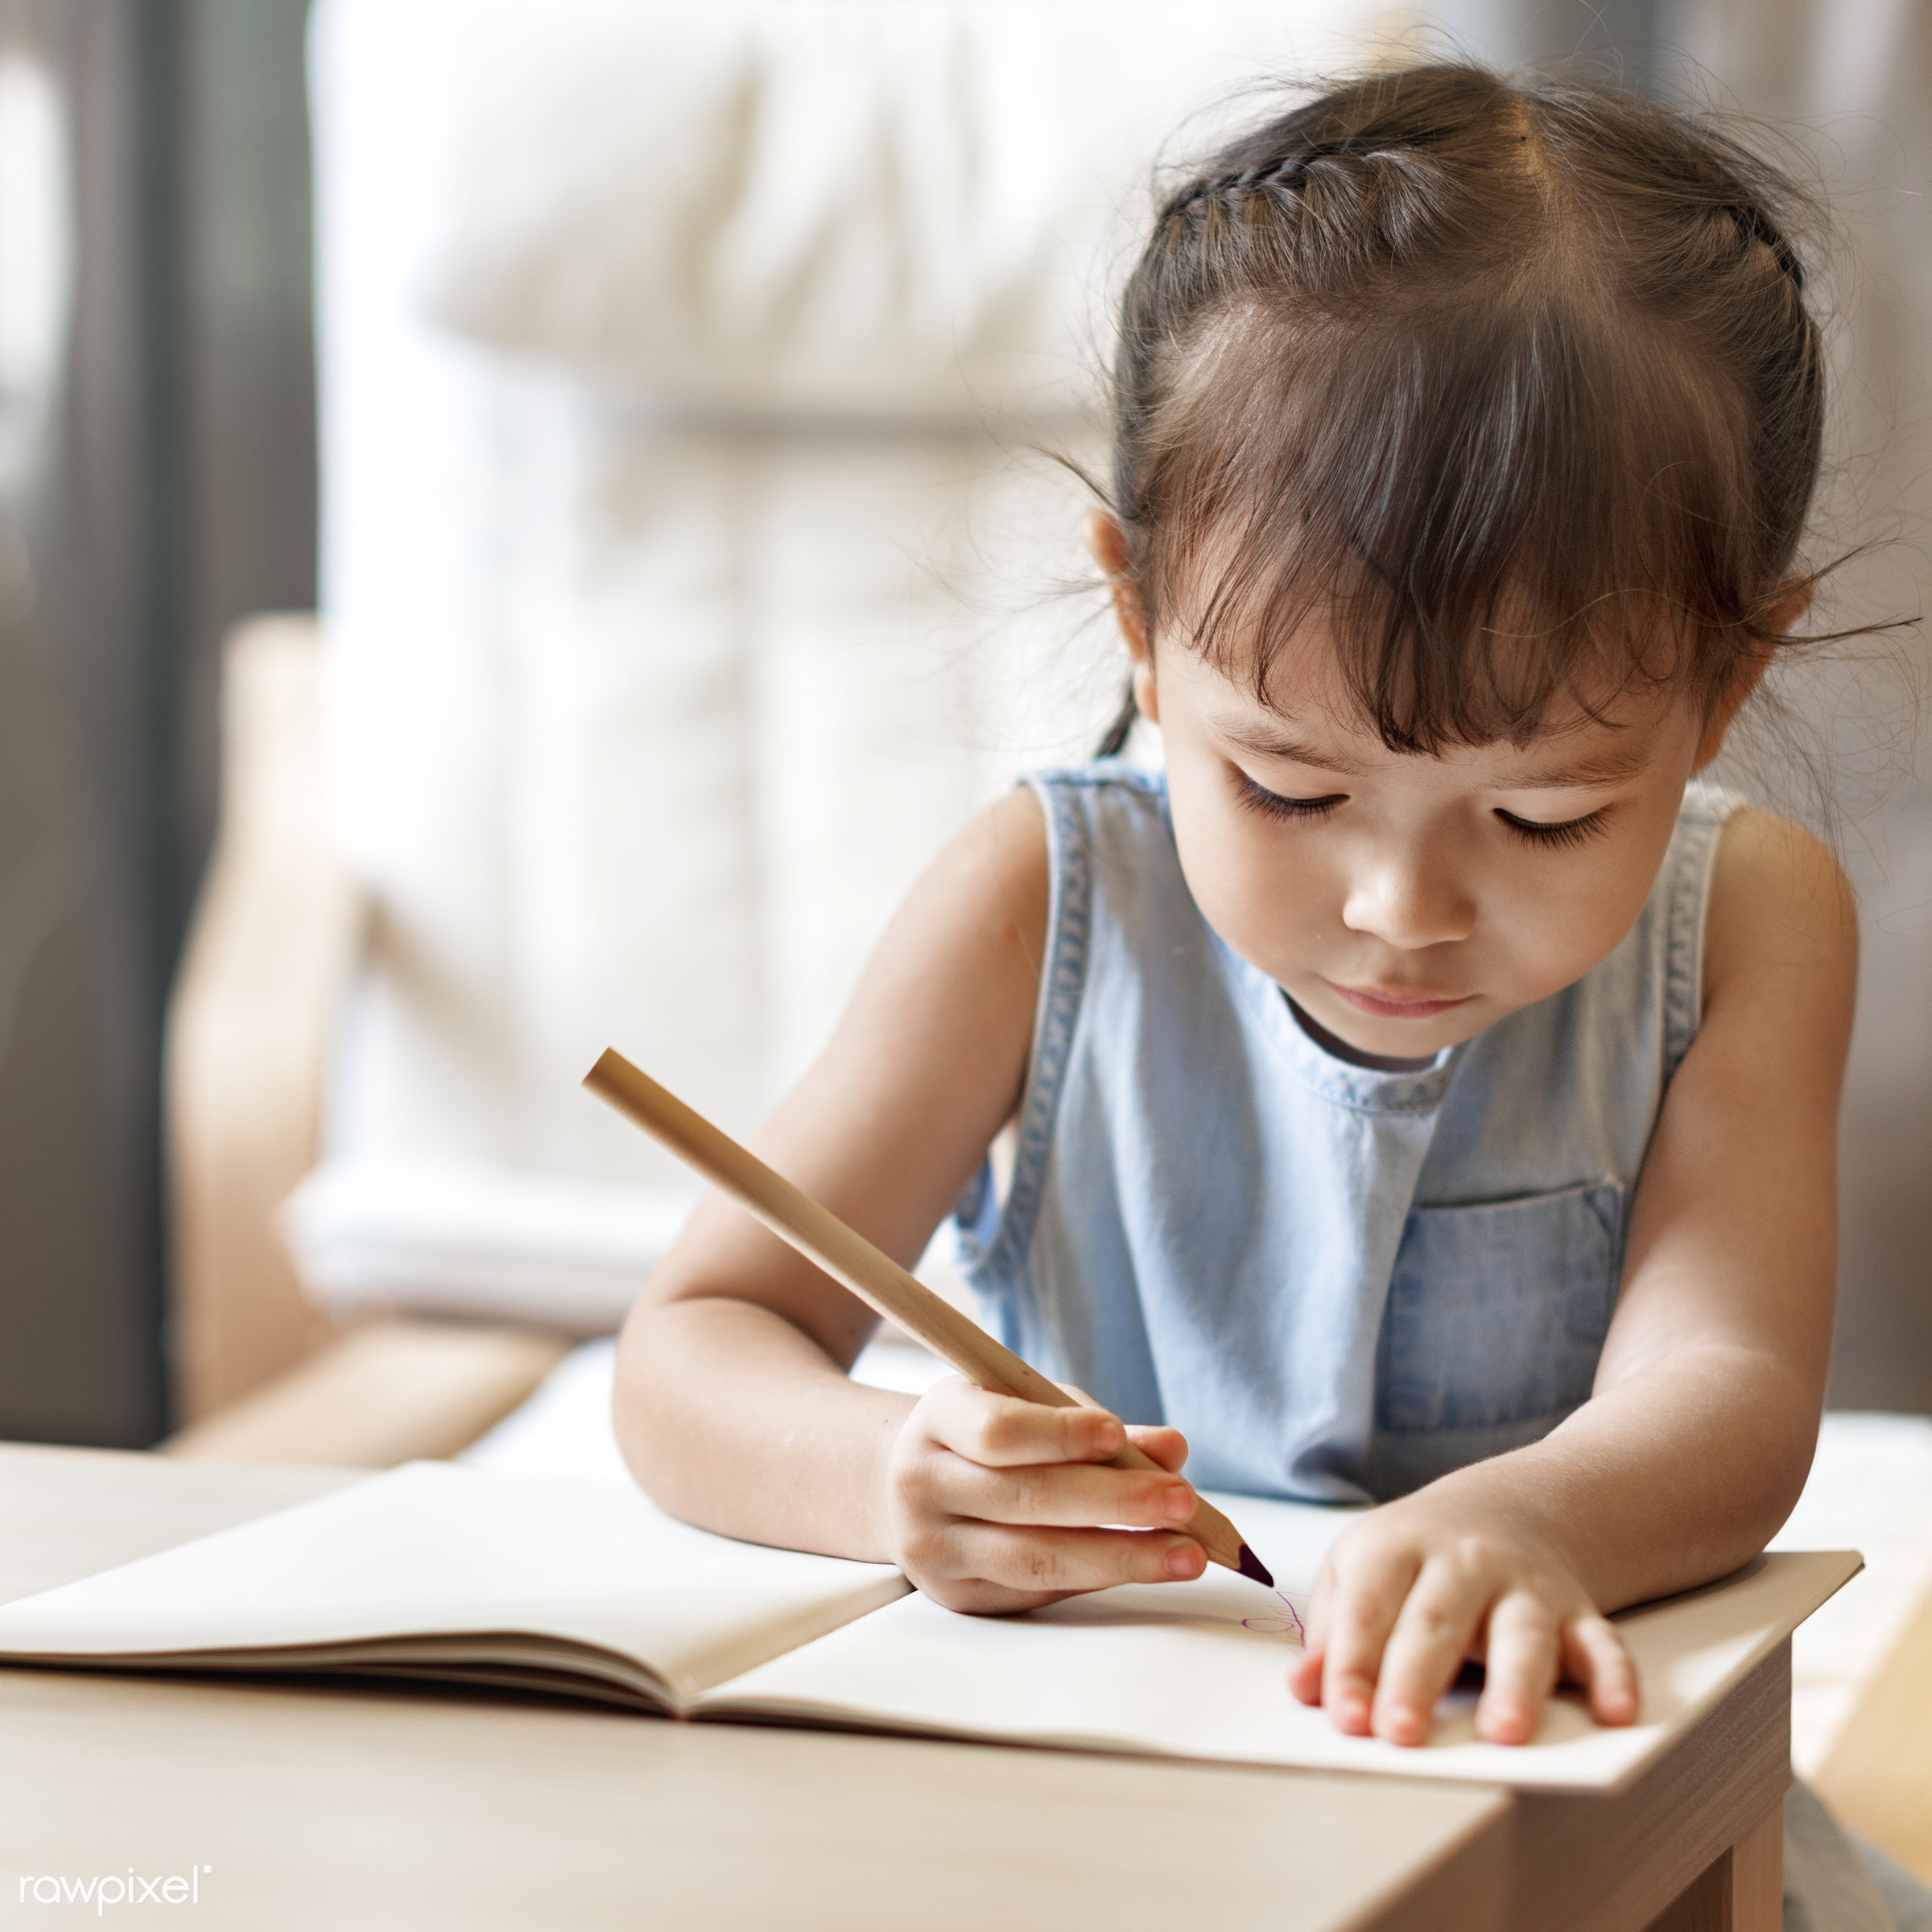 equipment, activity, adolescence, casual, cheerful, child, childhood, children, cute, drawing, education, enjoyment, female...